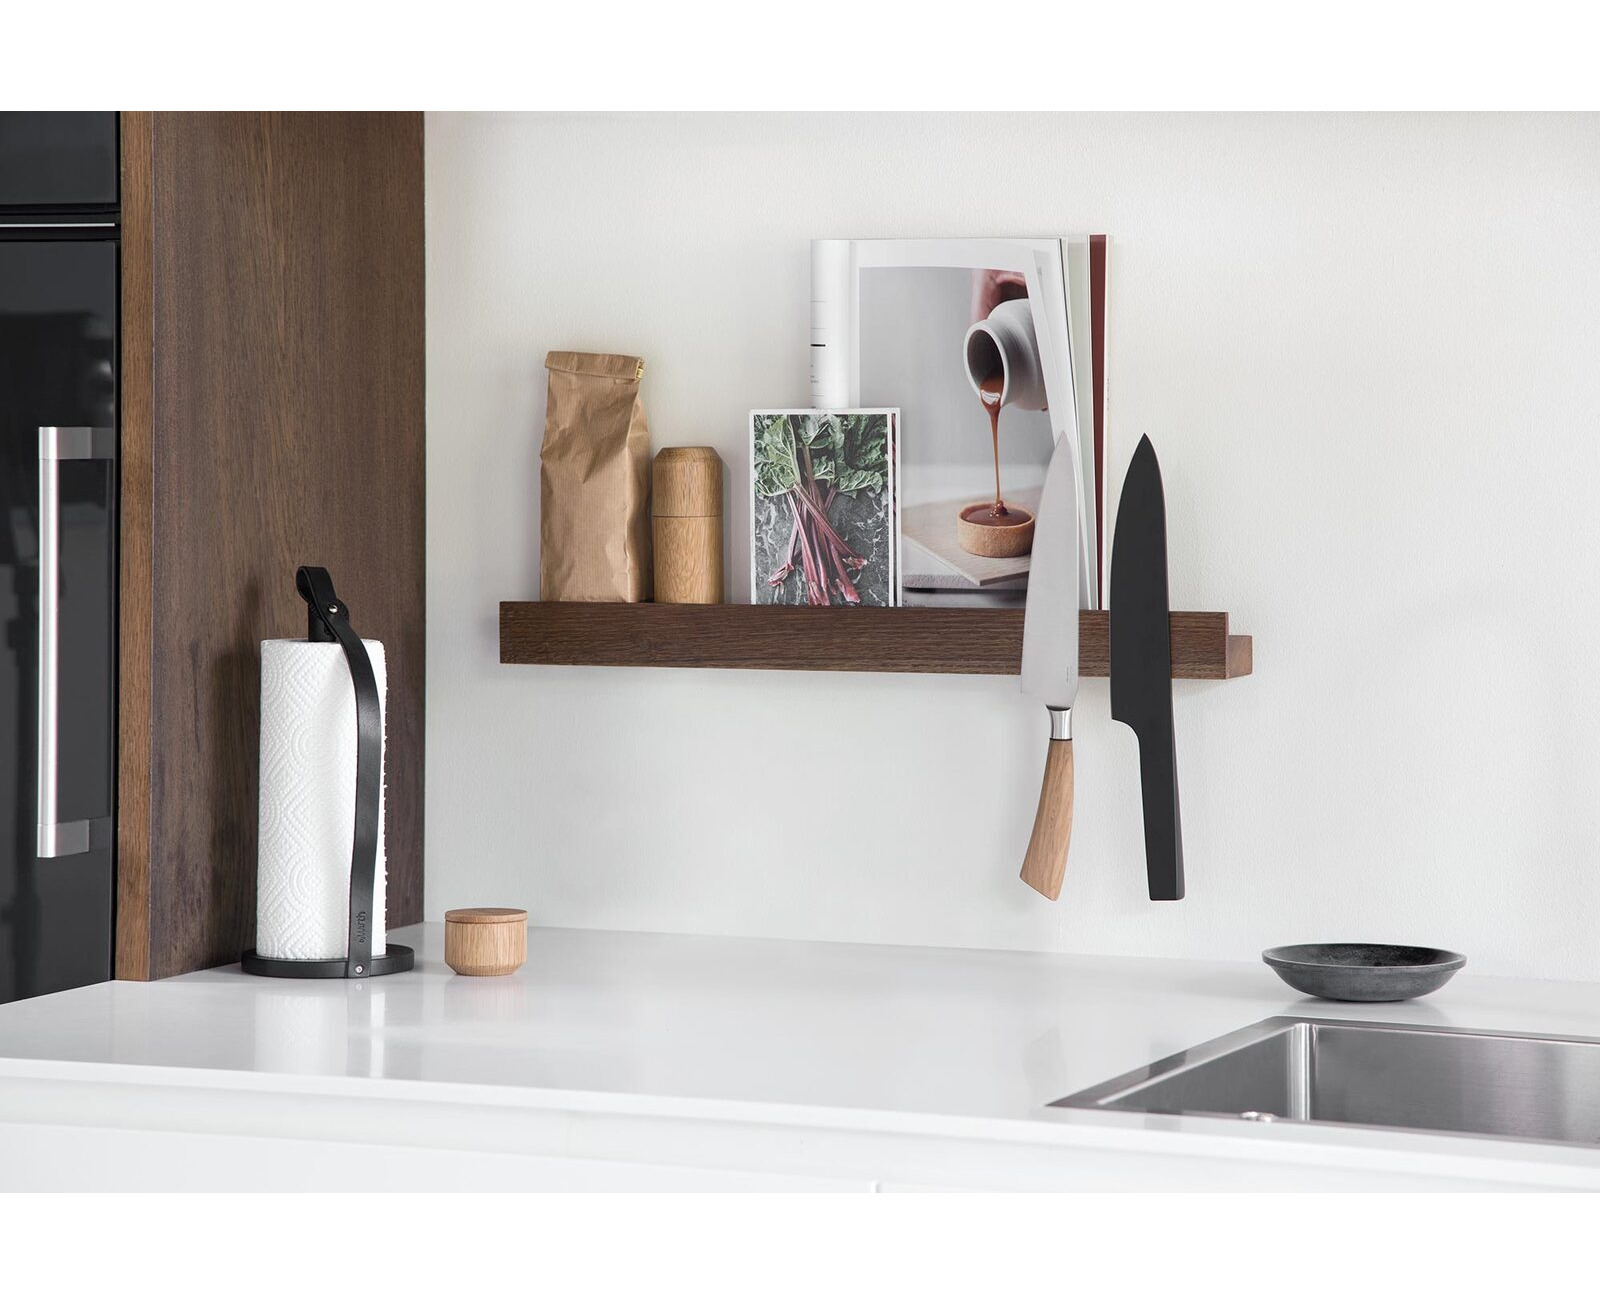 by wirth magnetic wall shelf and knife rack in smoked dark oak 60 cm